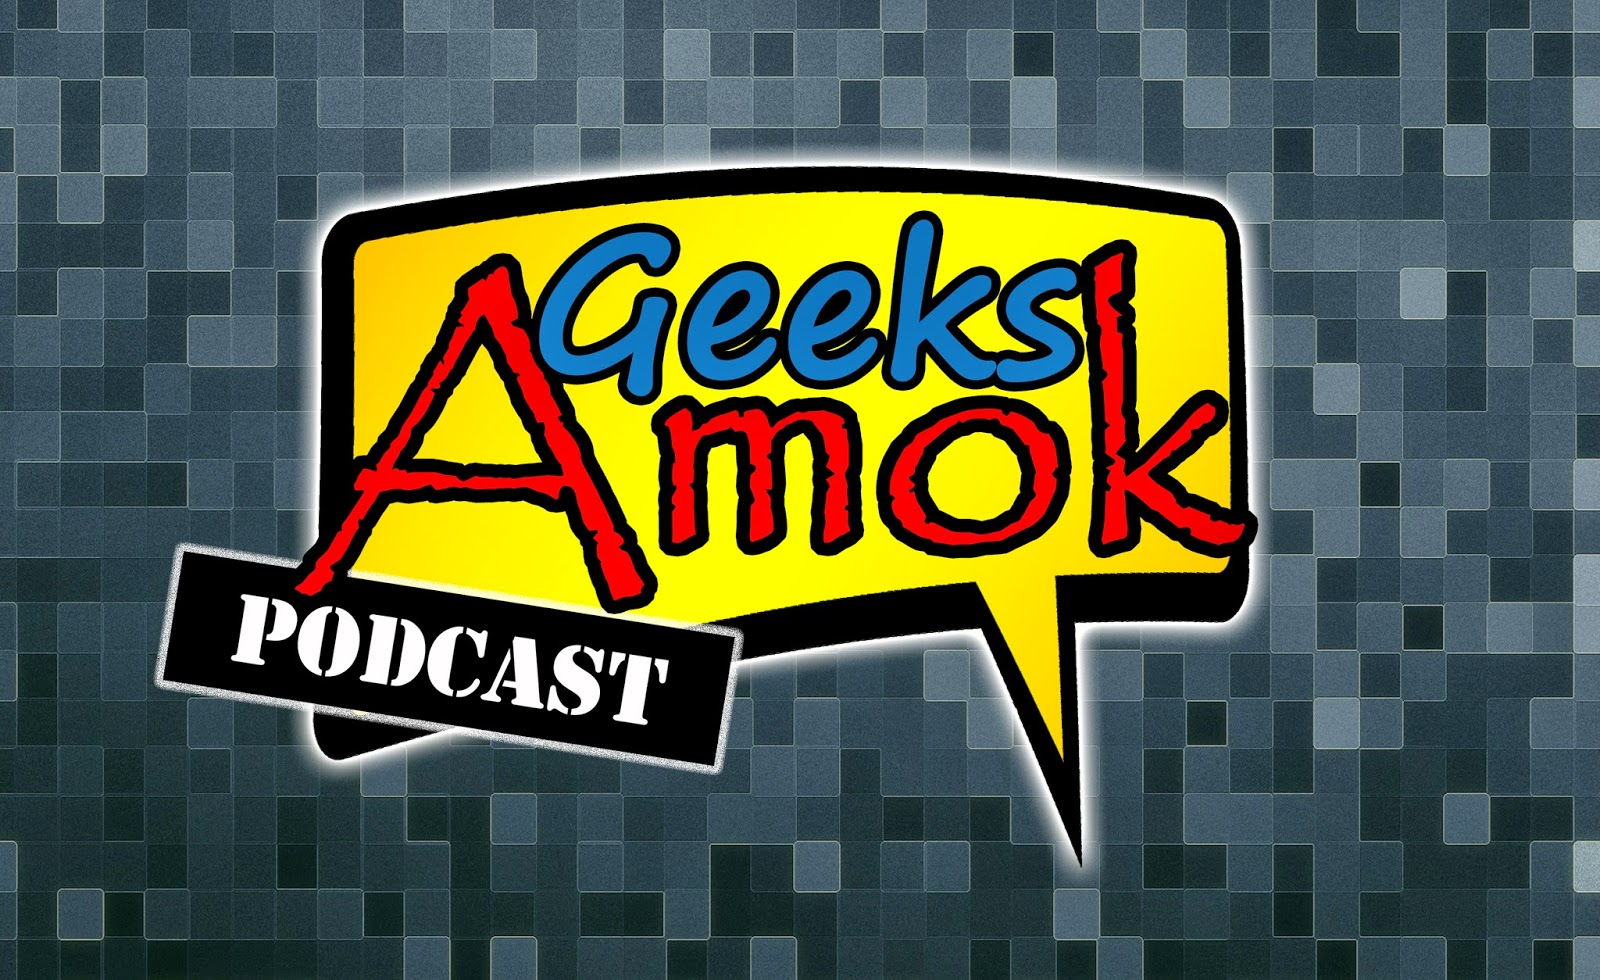 Geeks Amok Podcast Banner